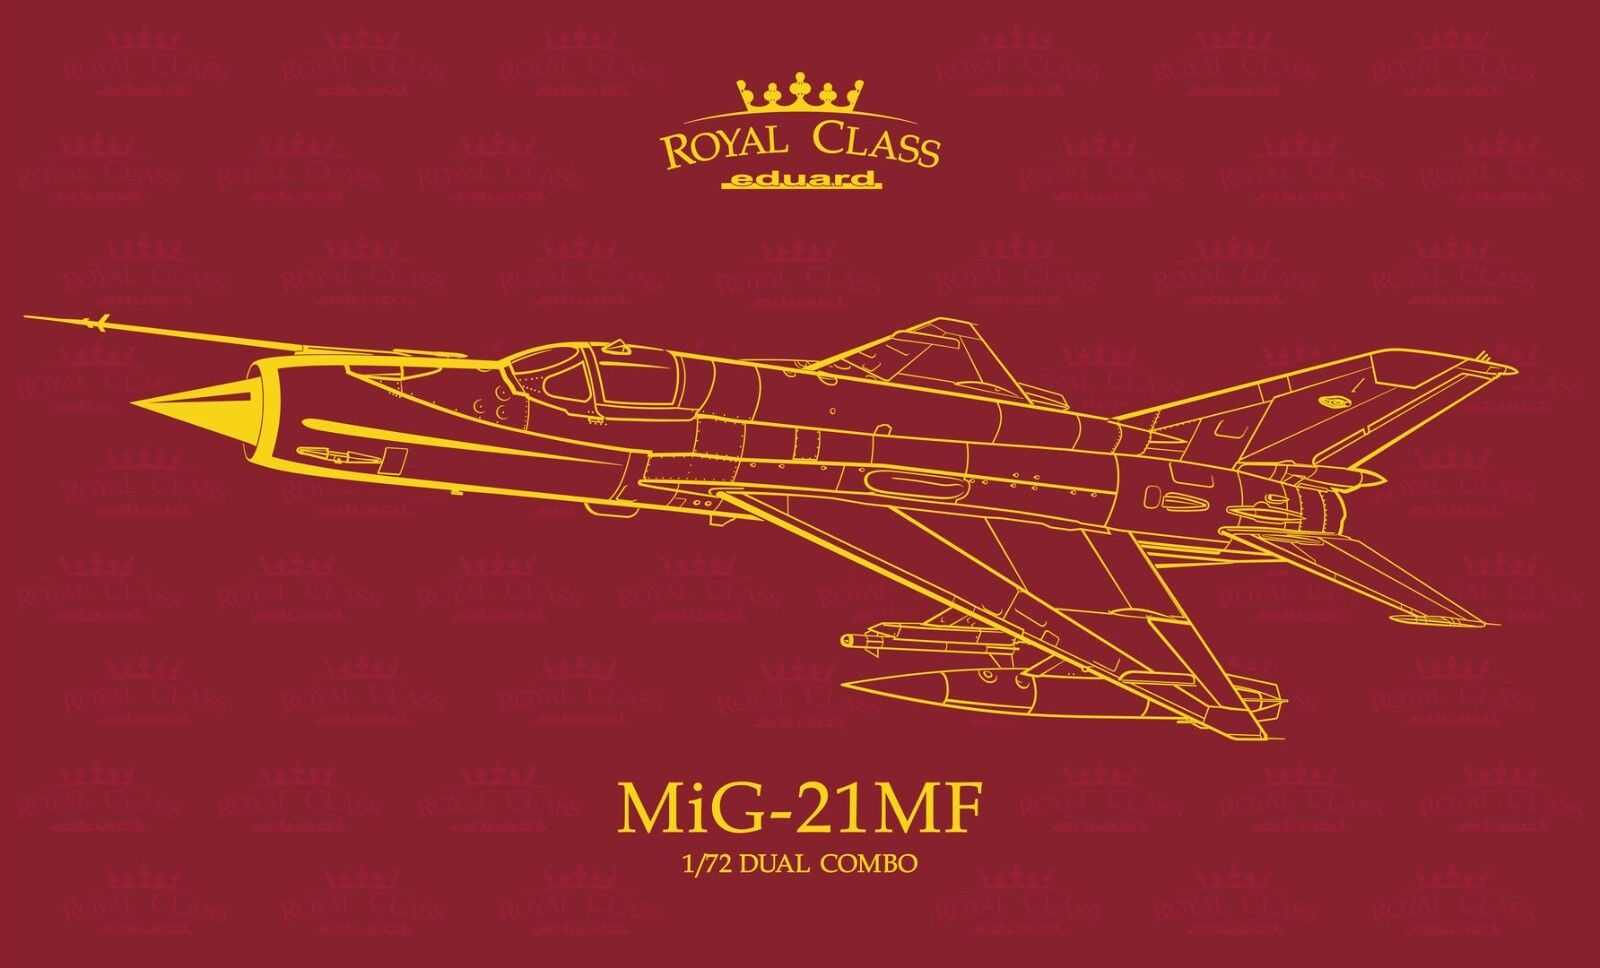 Eduard Royal Class R0017 1 72nd scale MiG-21MF Duel Combo with Fine Art Print